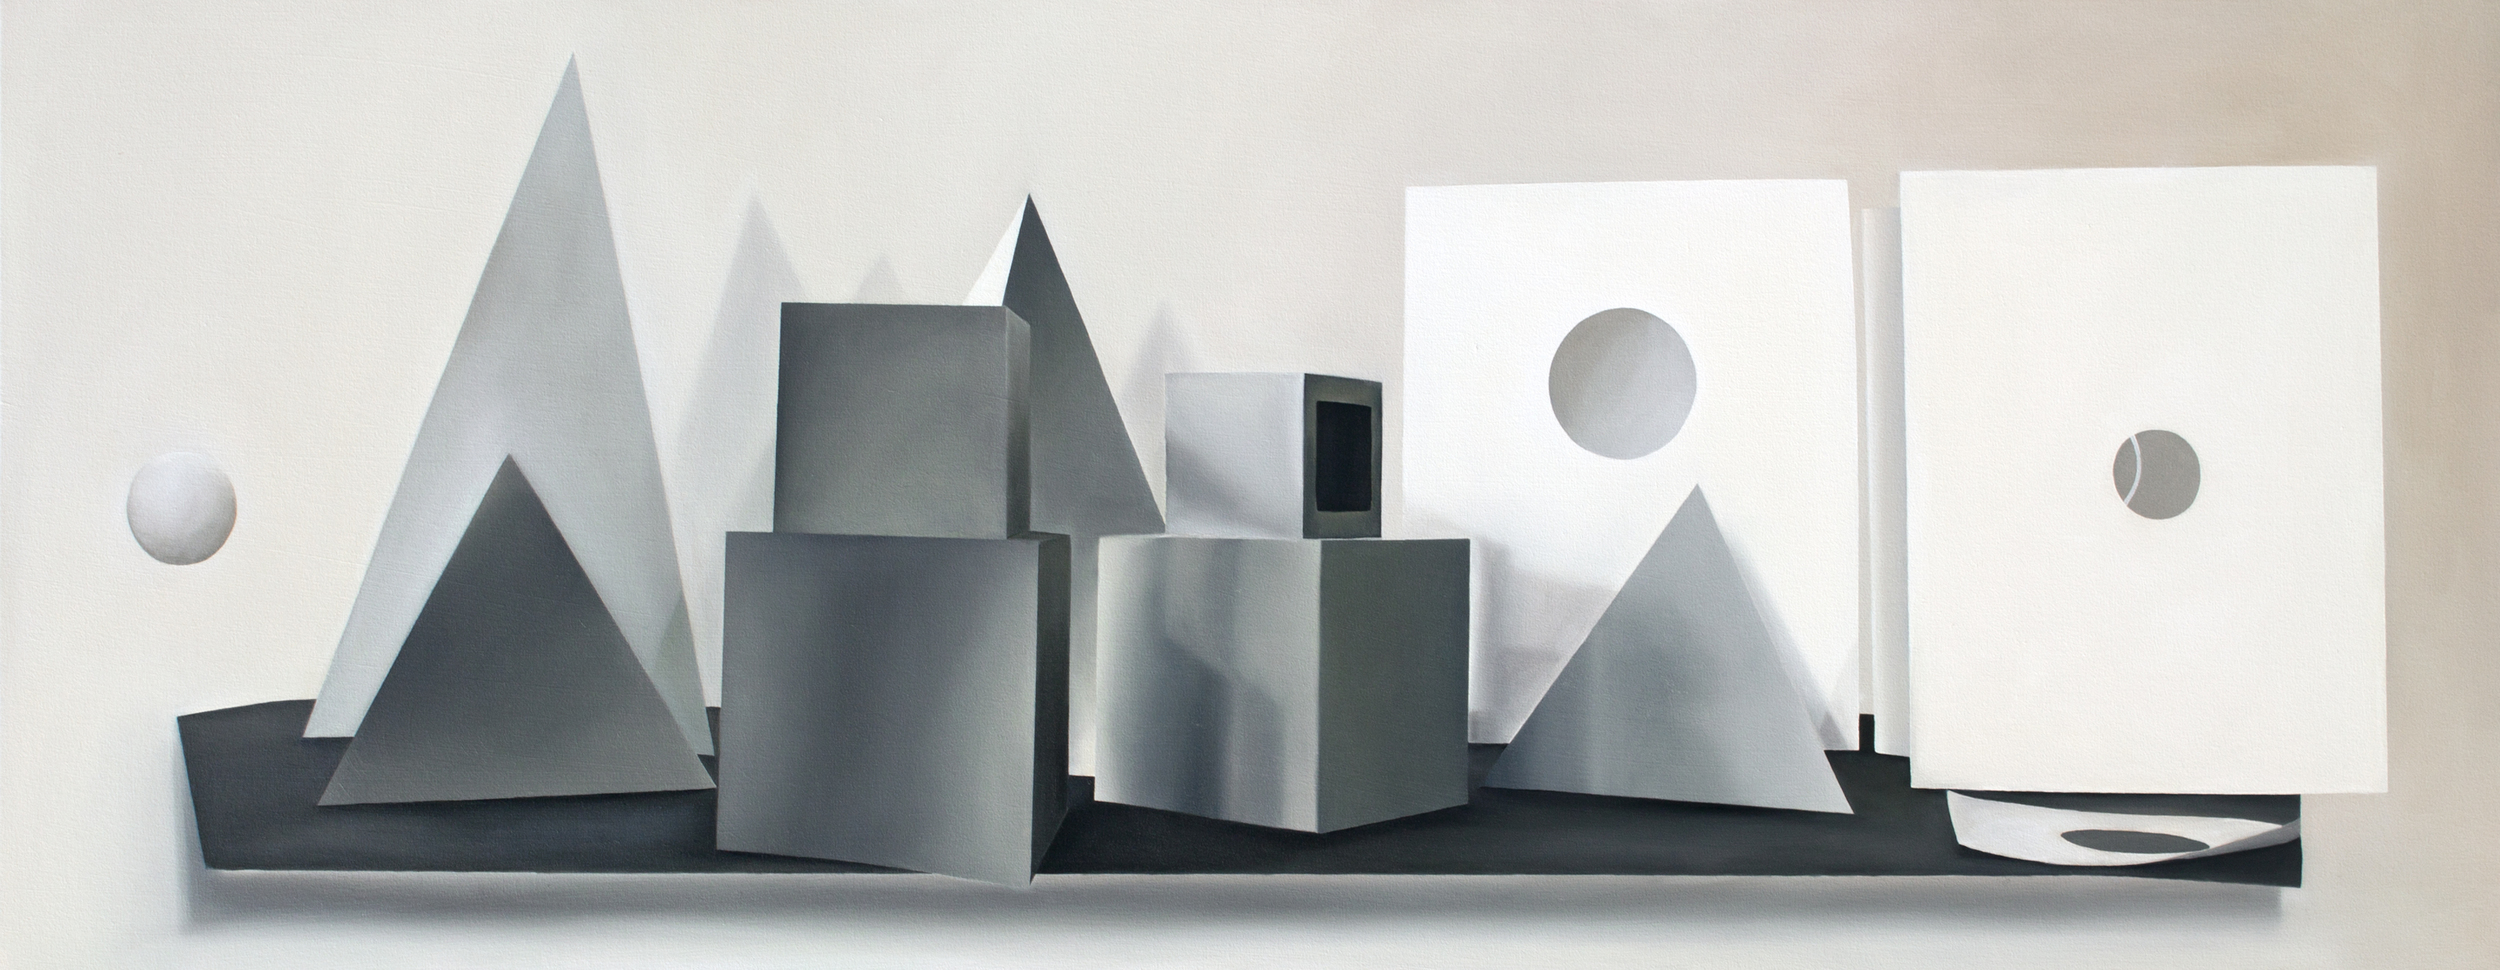 """The Geometric District (from Jessica Eaton studio visit) 2013, Oil on canvas, 28"""" x 72"""""""